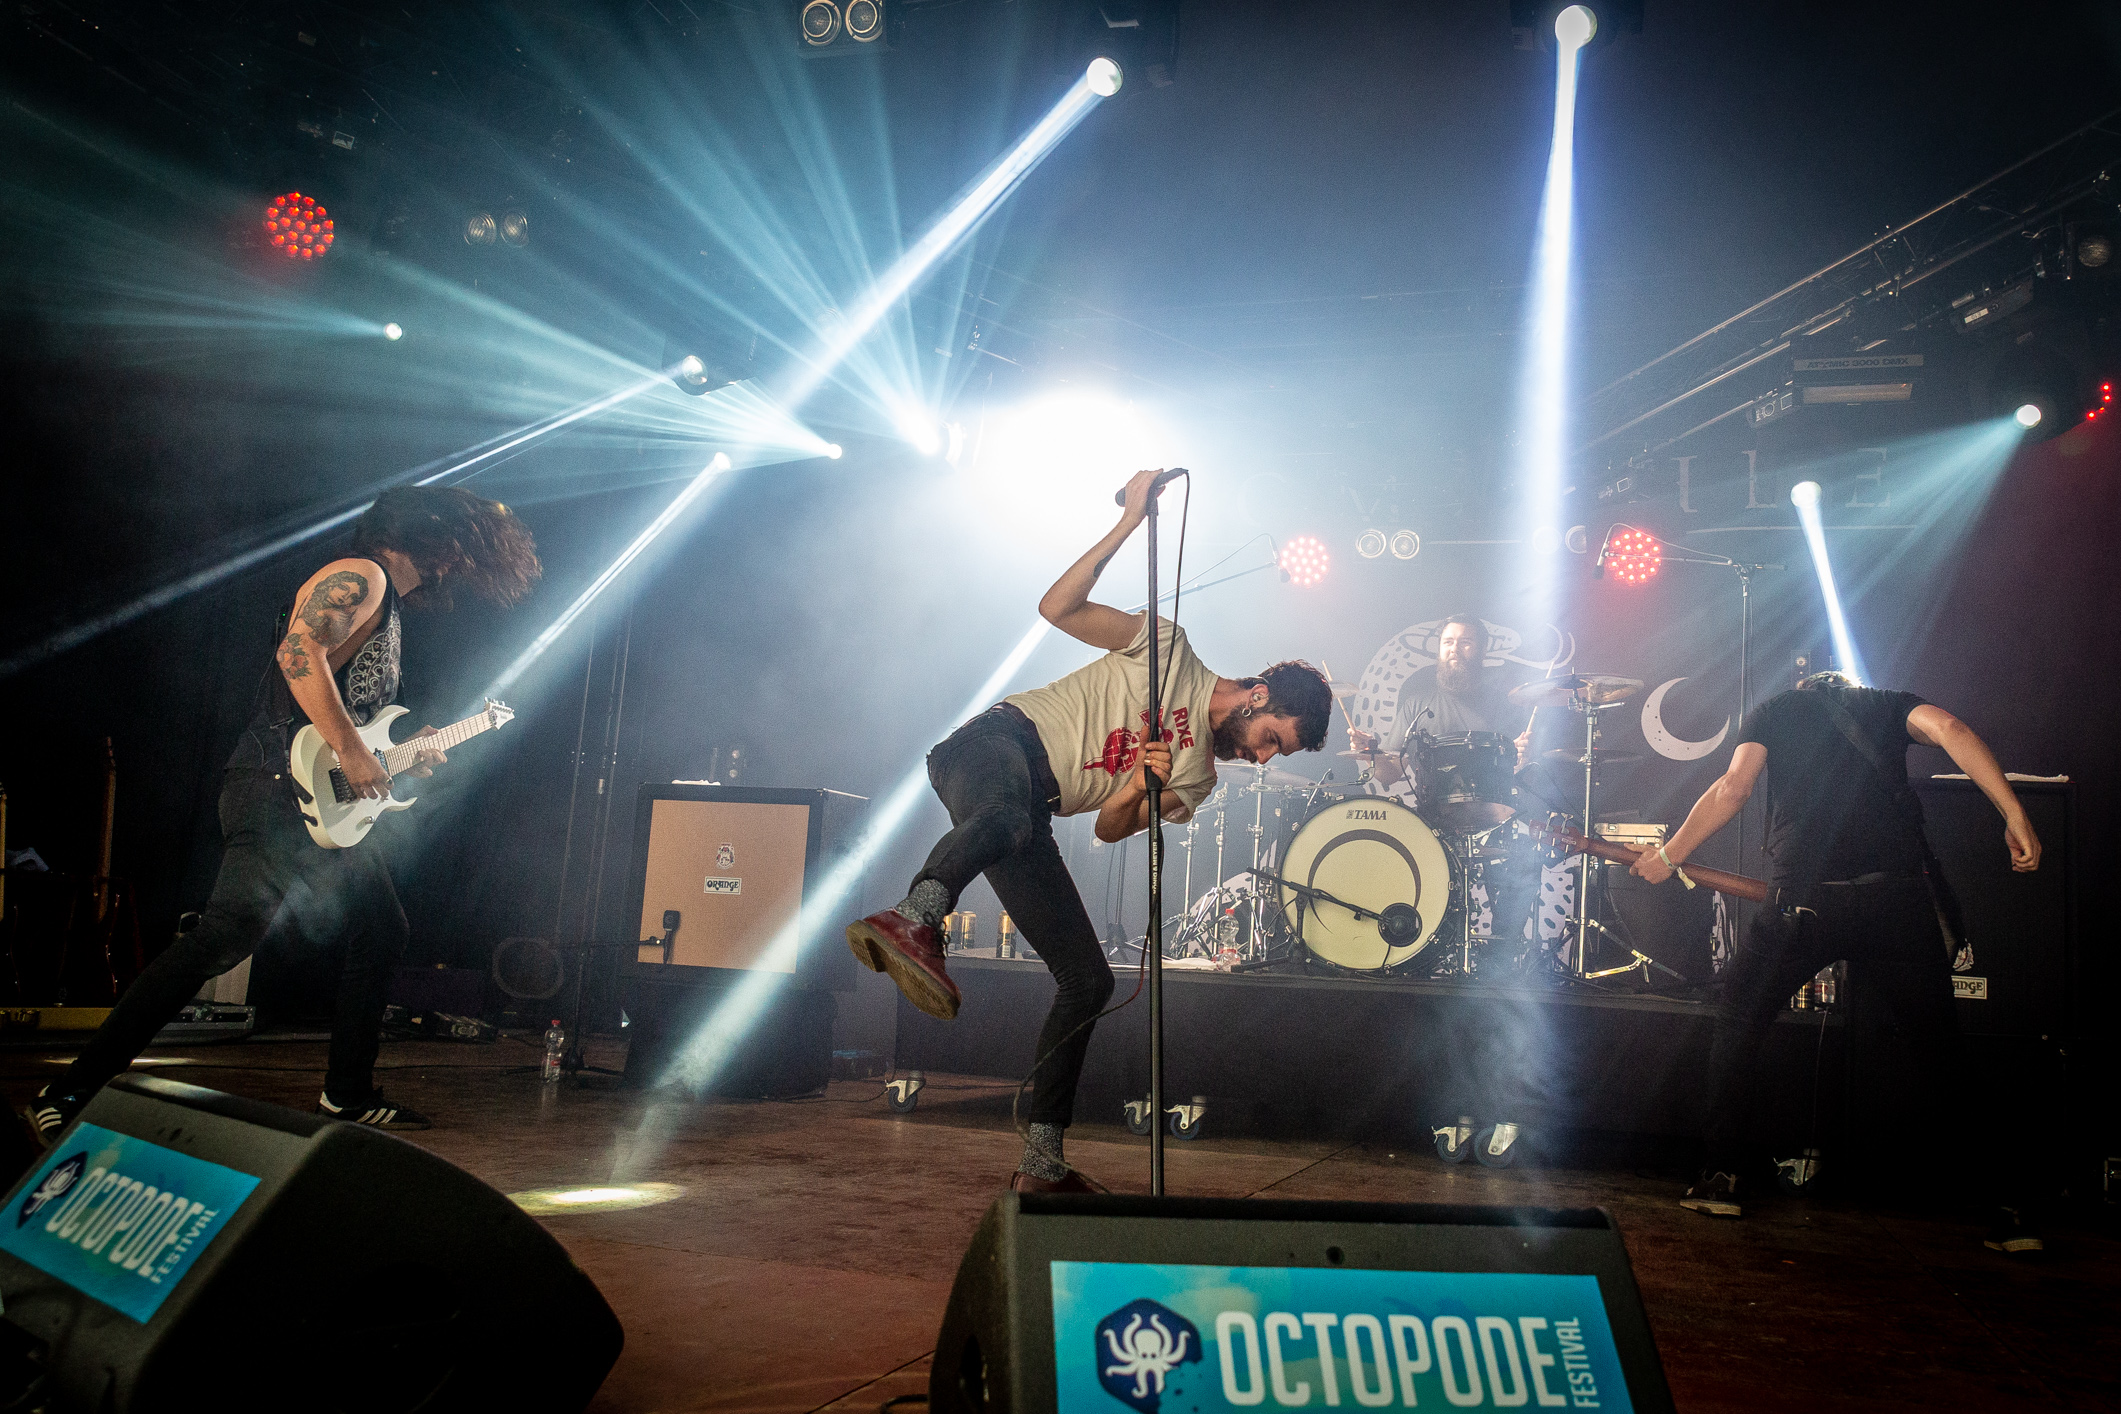 Octopode 2019 – Promethee